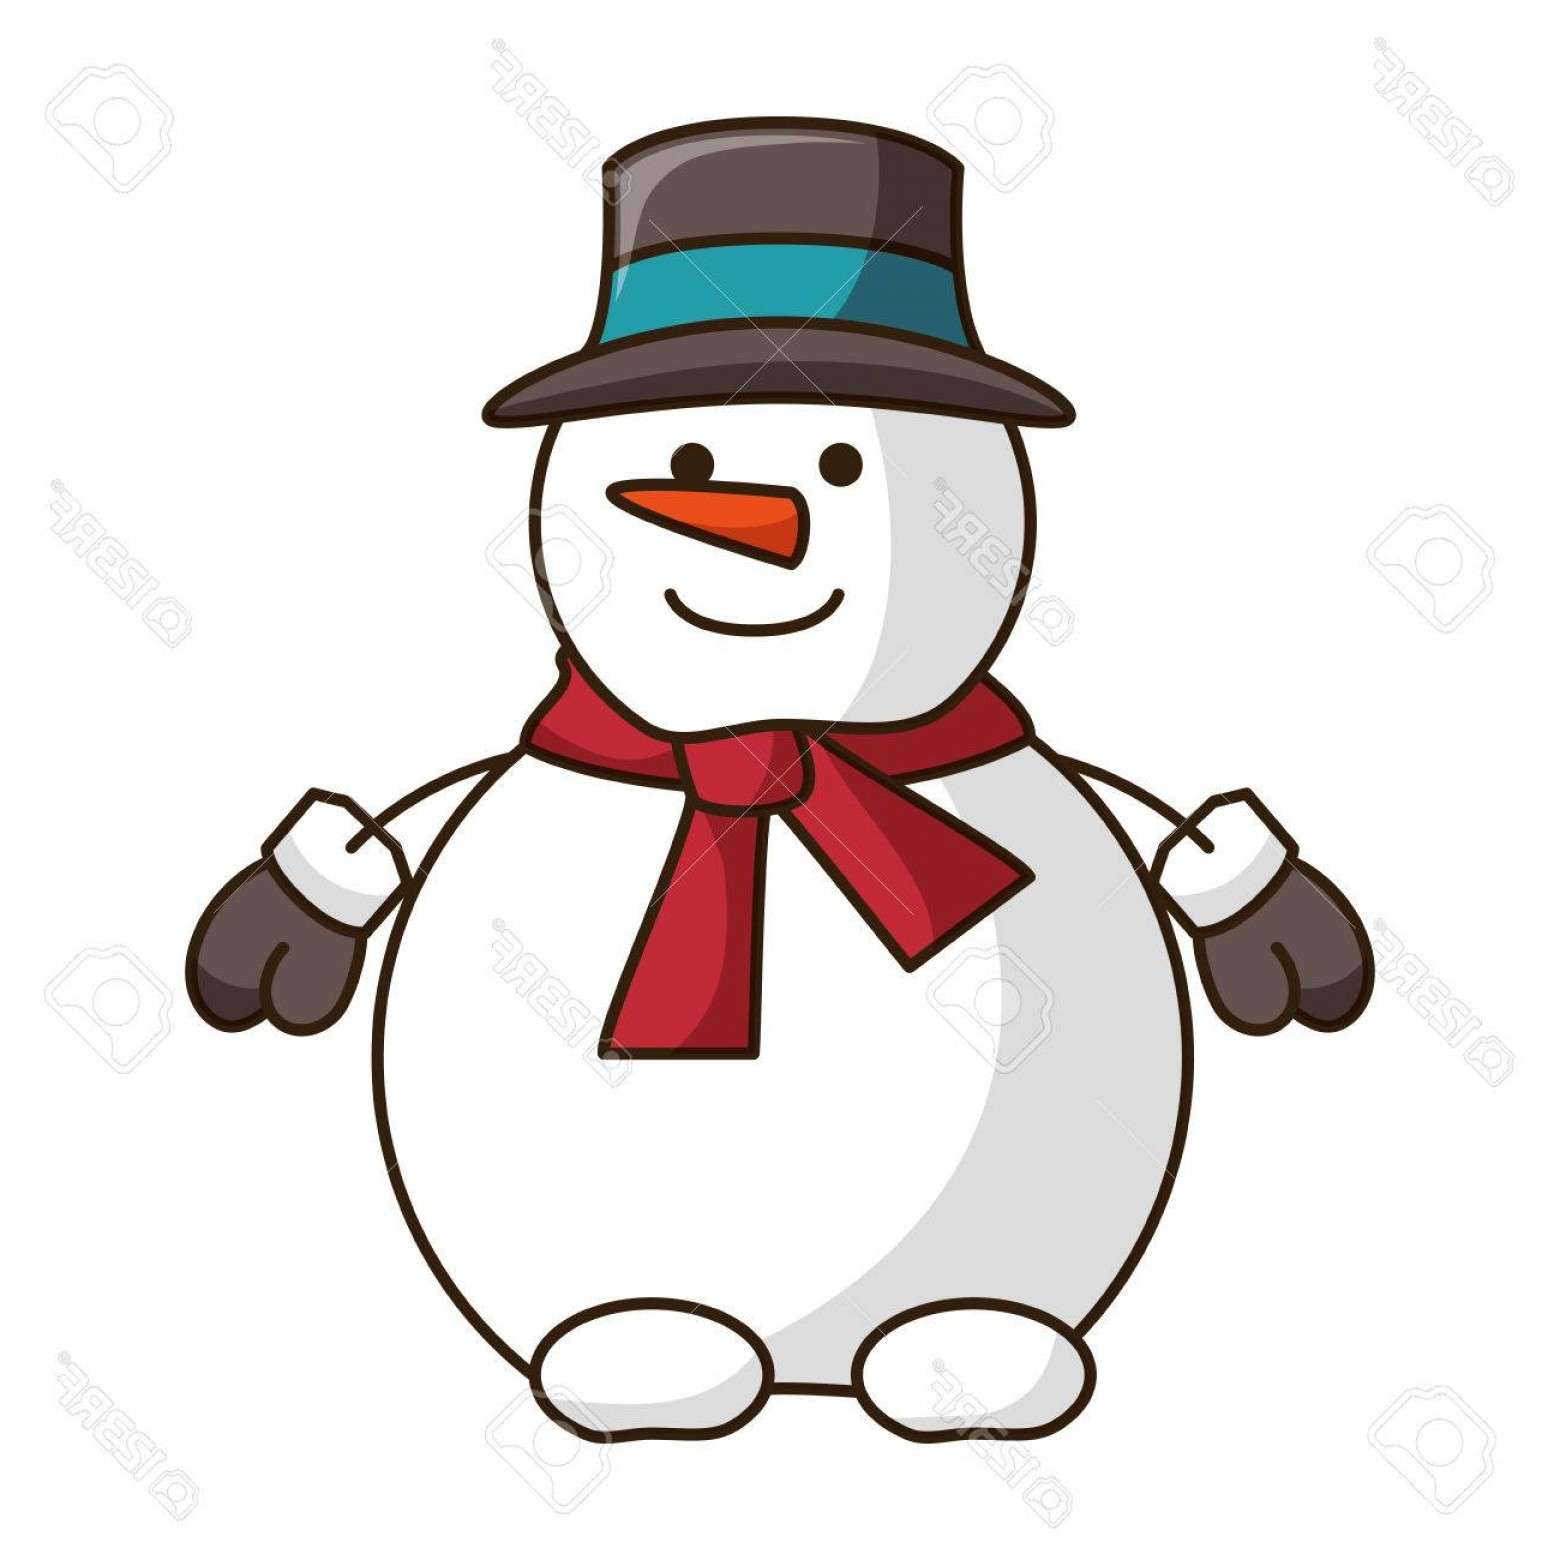 No Hat With Snowman Vector: Photostock Vector Snowman Smiling Cartoon With Red Scarf And Black Hat Christmas Season Symbol Vector Illustration